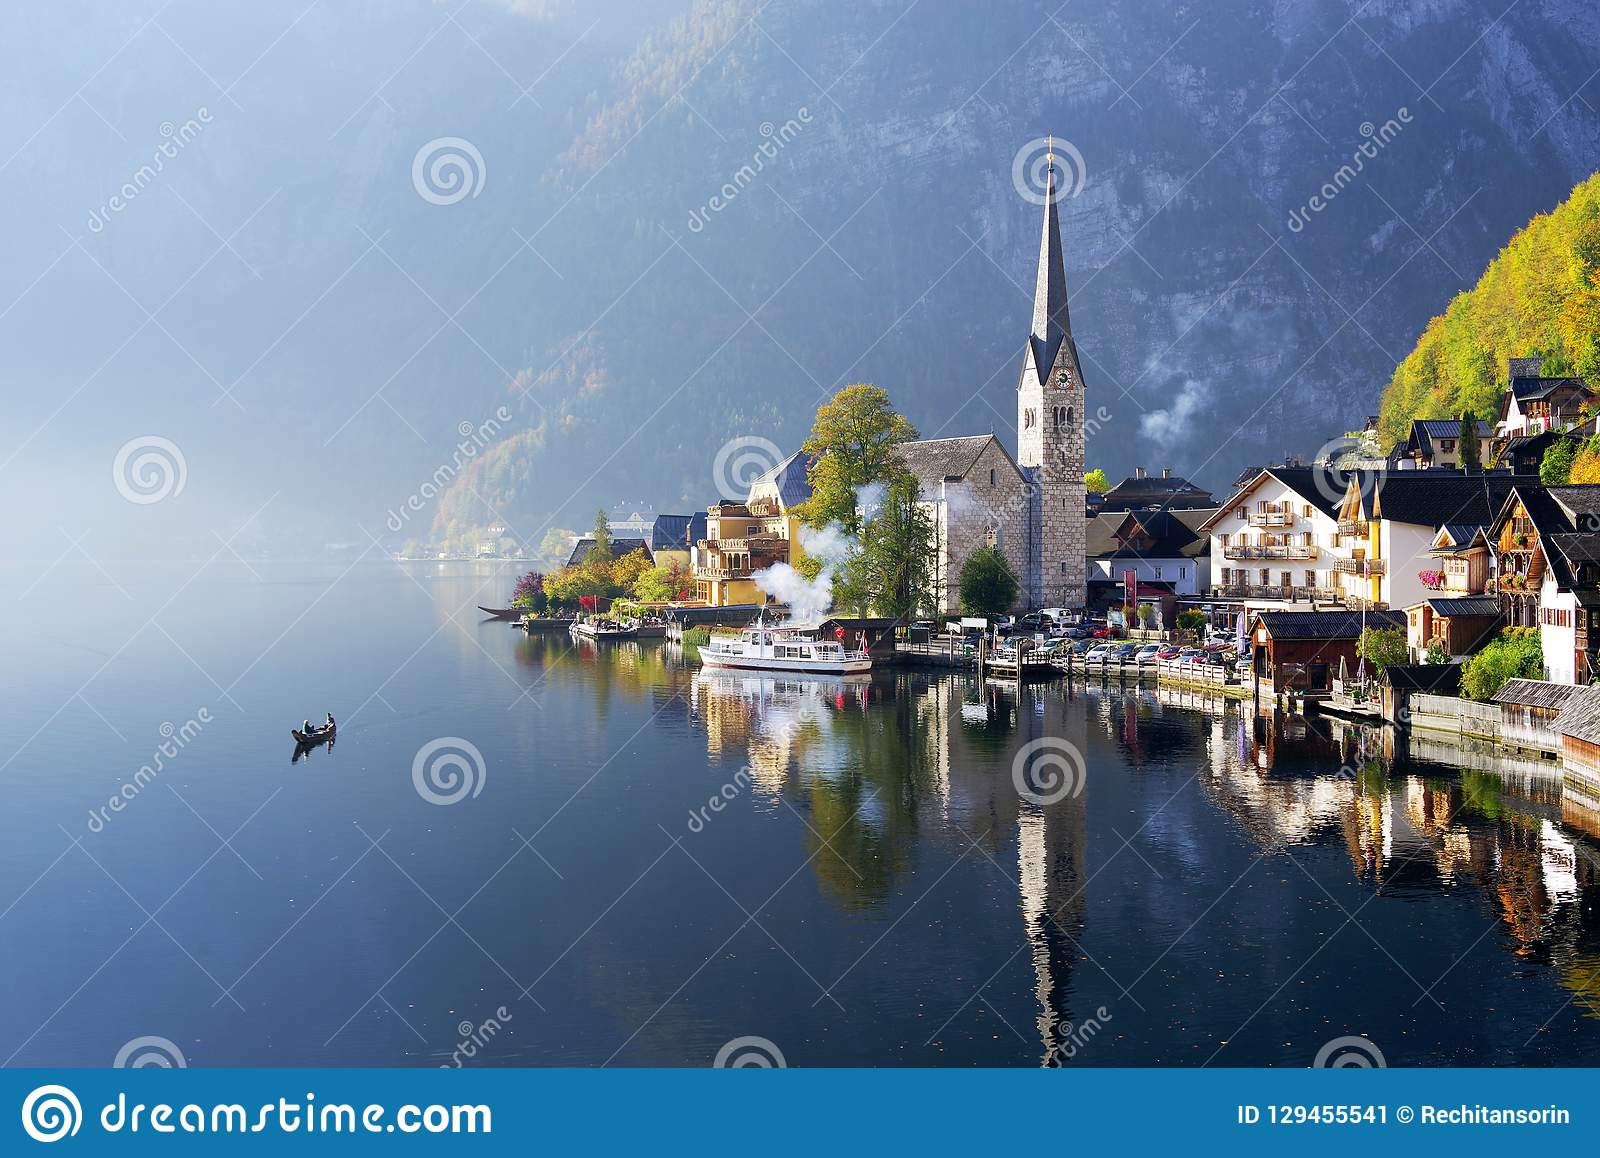 The famous Hallstatt lake in a autumn foggy morning